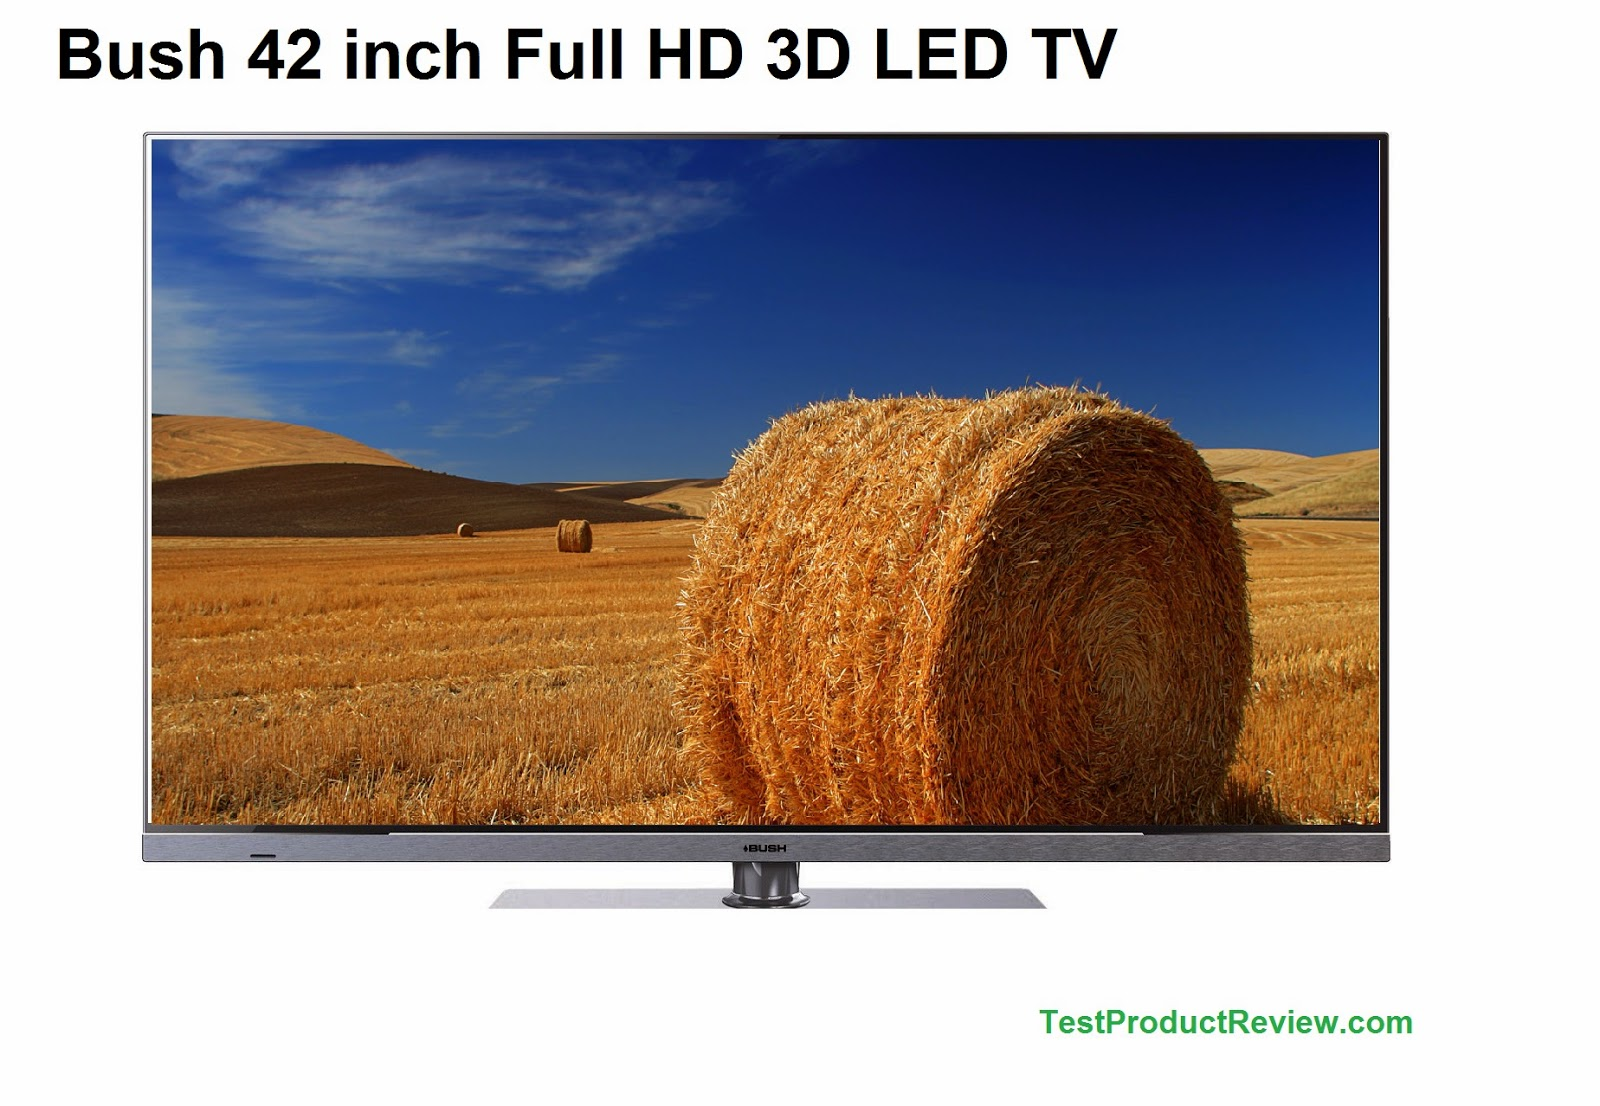 Bush 42 inch Full HD 3D LED TV price and specs